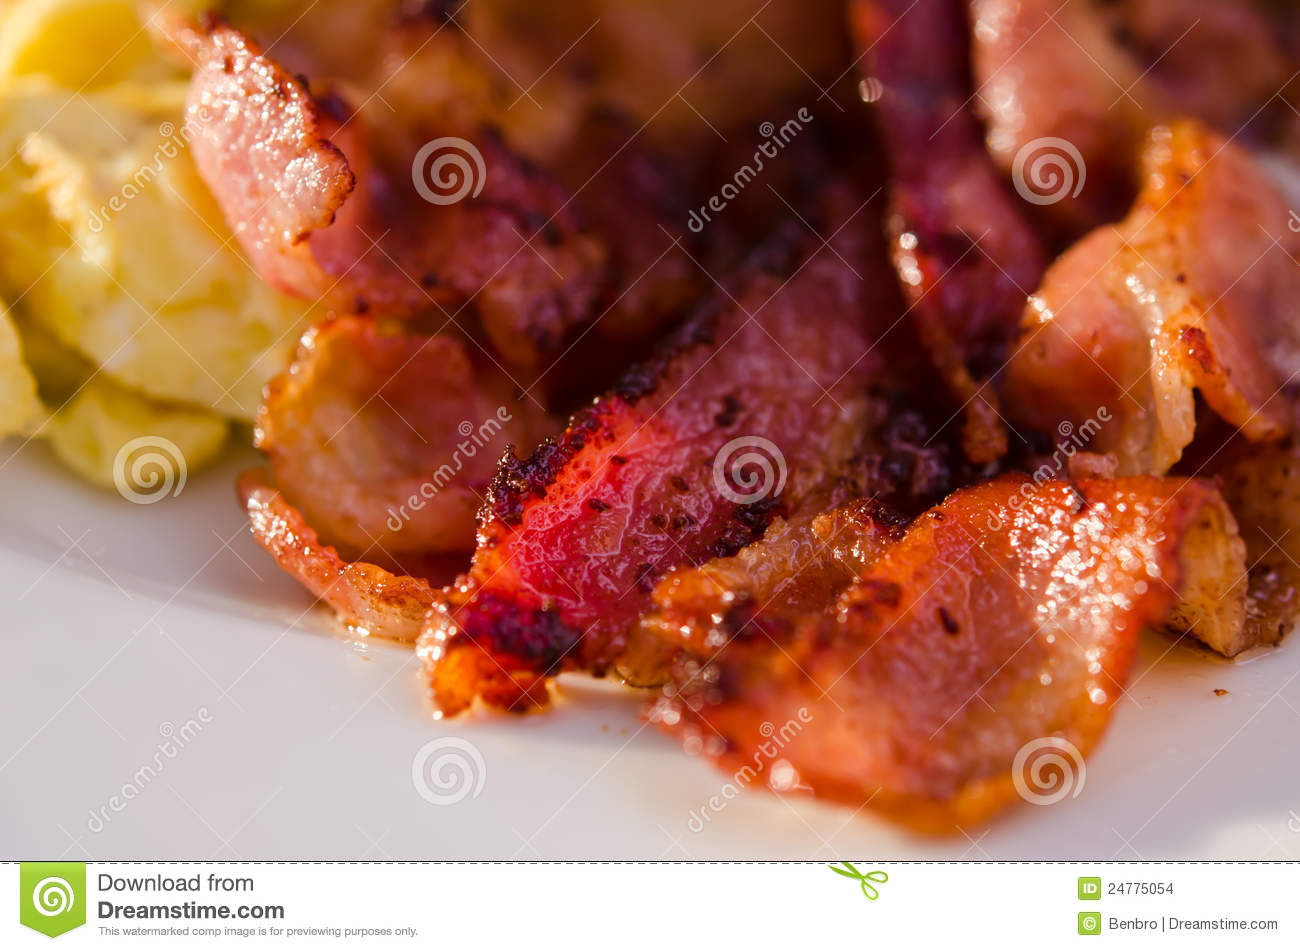 how to get crispy bacon